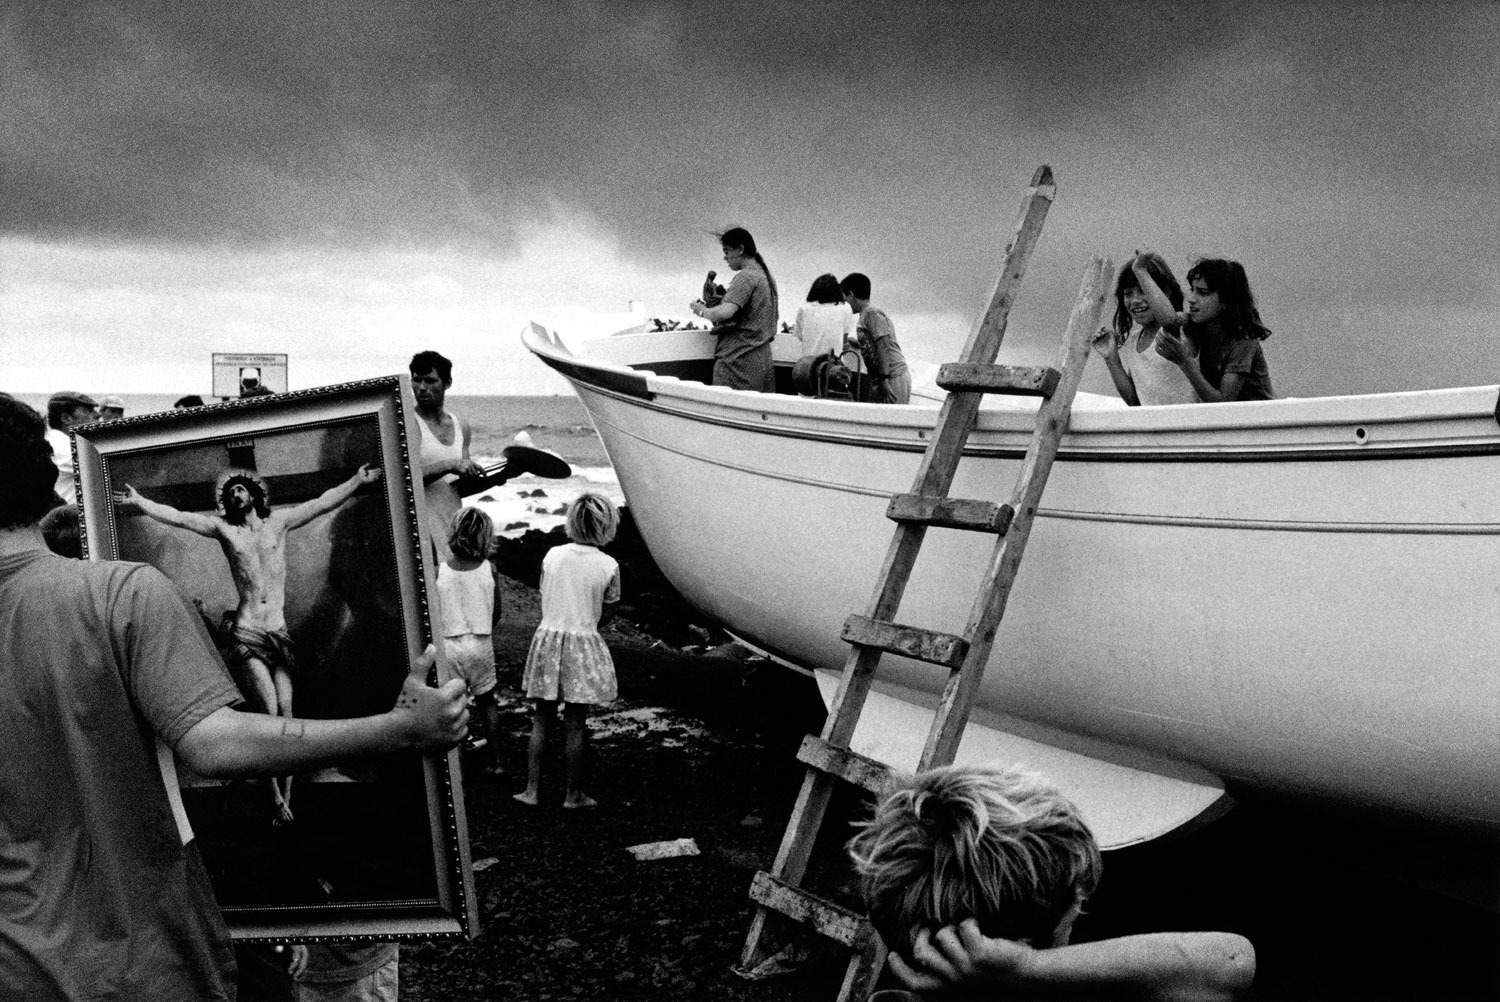 Christening of an Artisan Fishing Boat, Sao Miguel Island, Azores